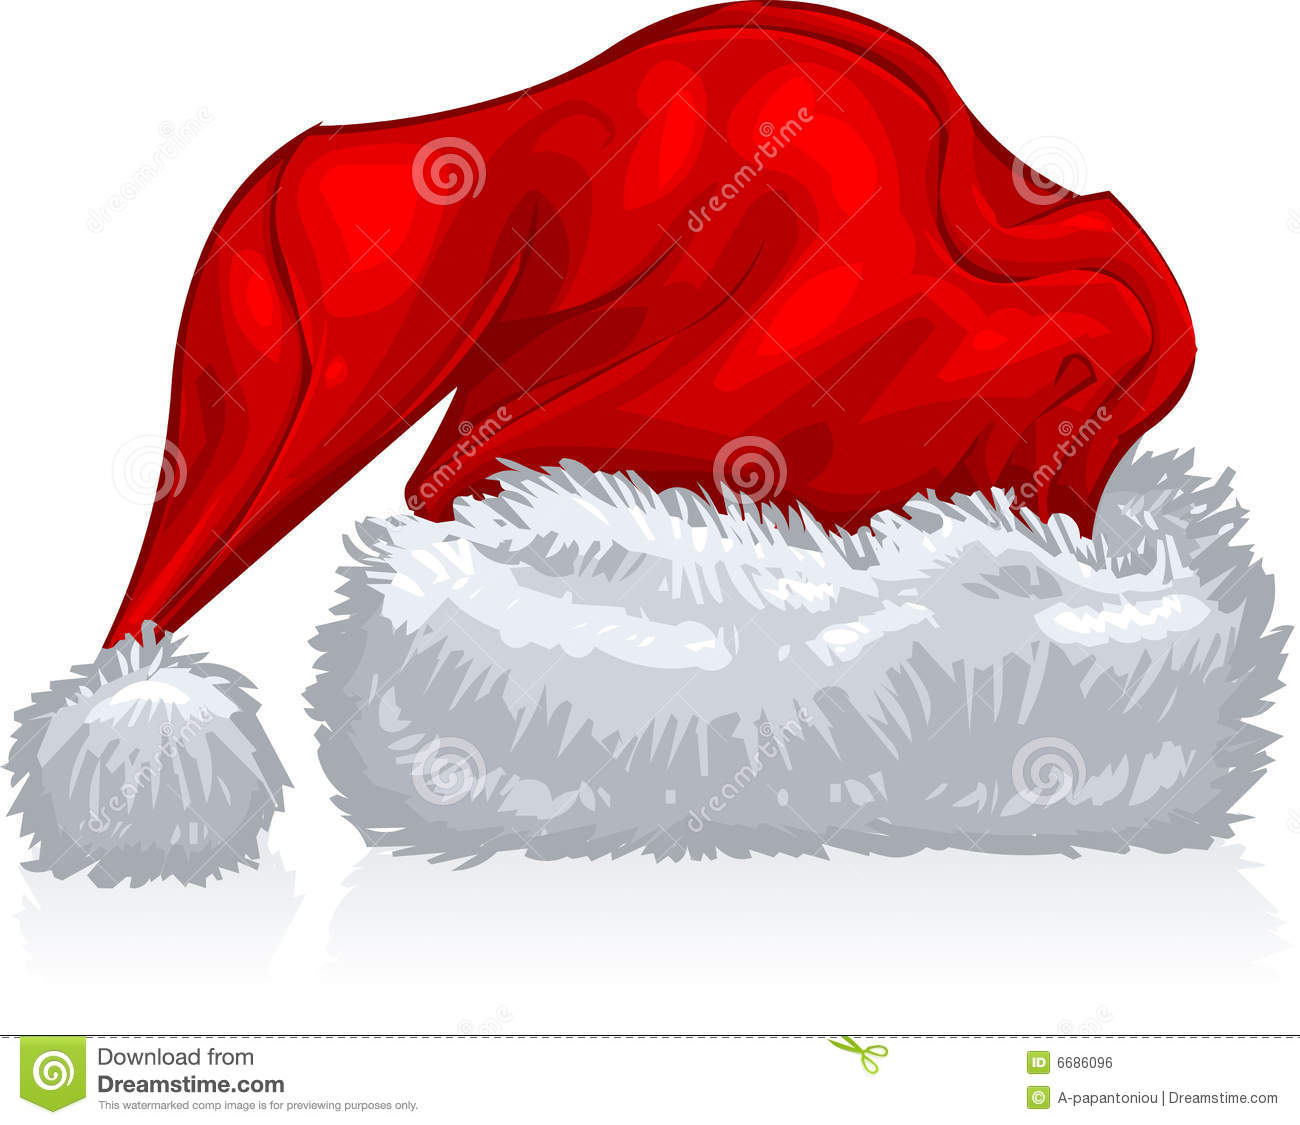 ... art illustration of a red, holiday, Santa hat, in white background